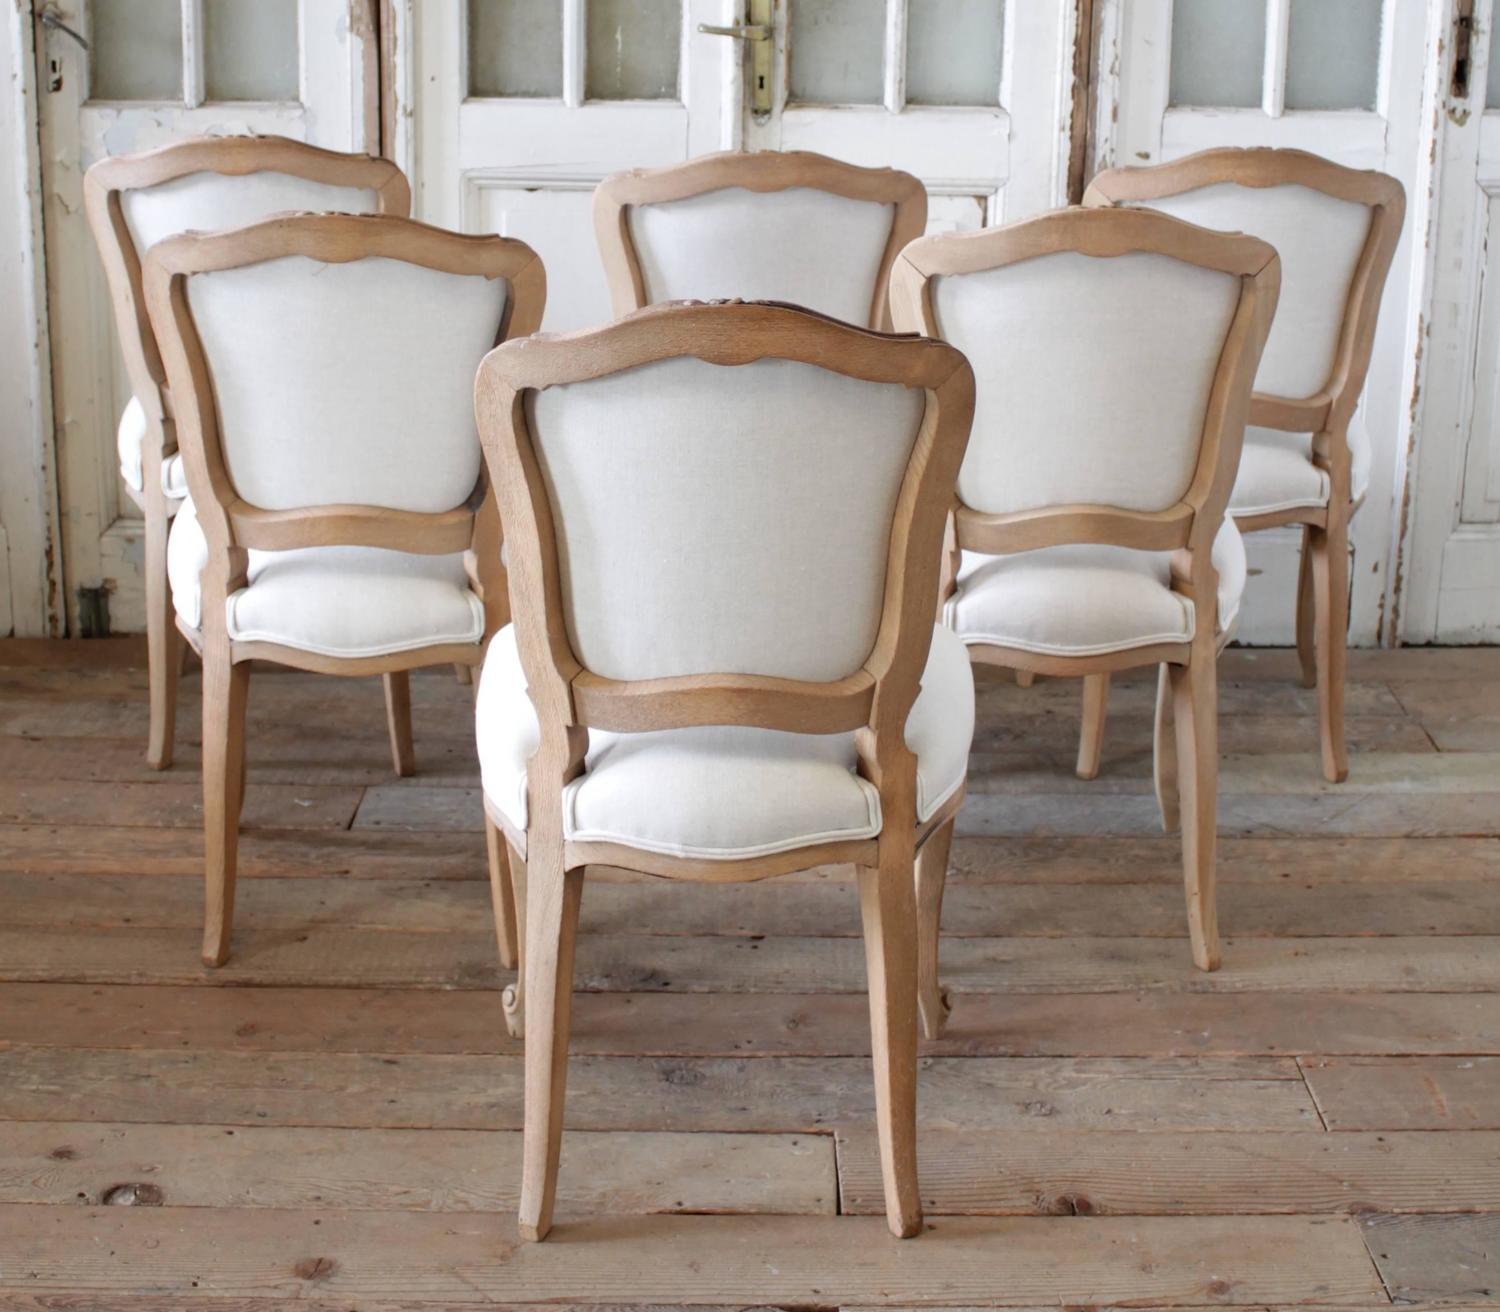 French Dining Chairs Louis Xv Style French Country Dining Chairs At 1stdibs